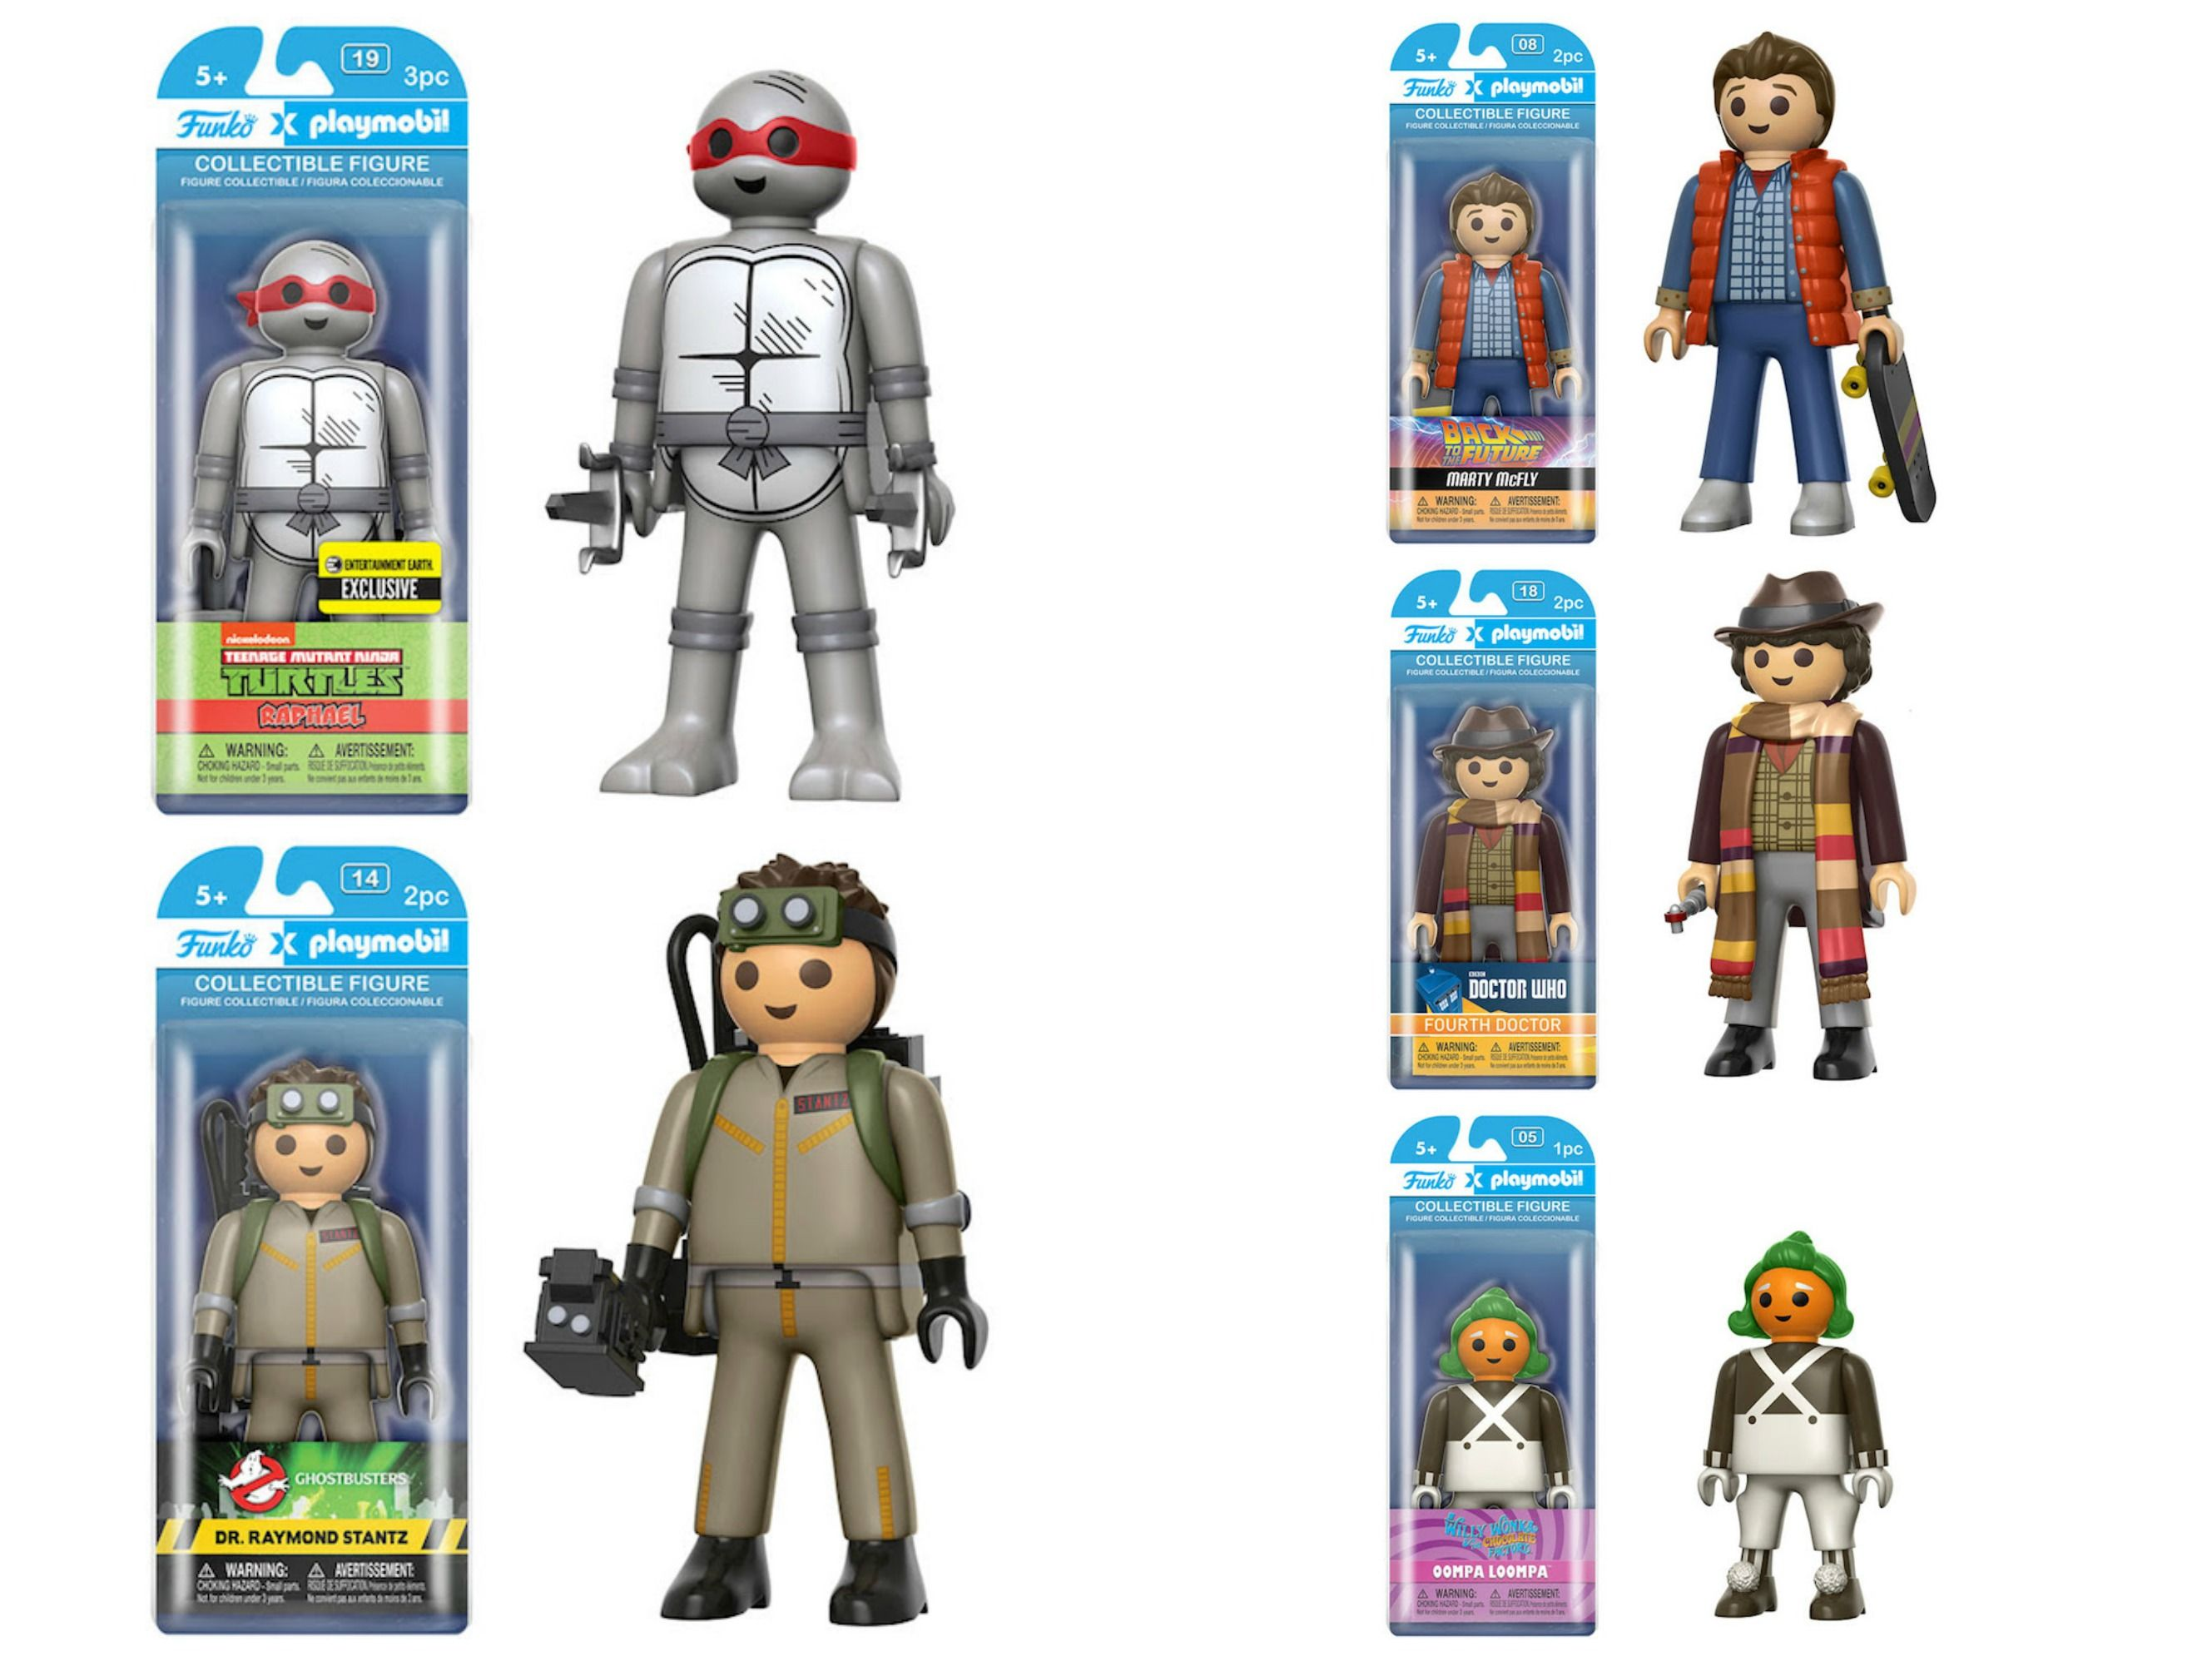 Funko\'s Playmobil Line Includes Doctor Who, Ghostbusters, And TMNT ...